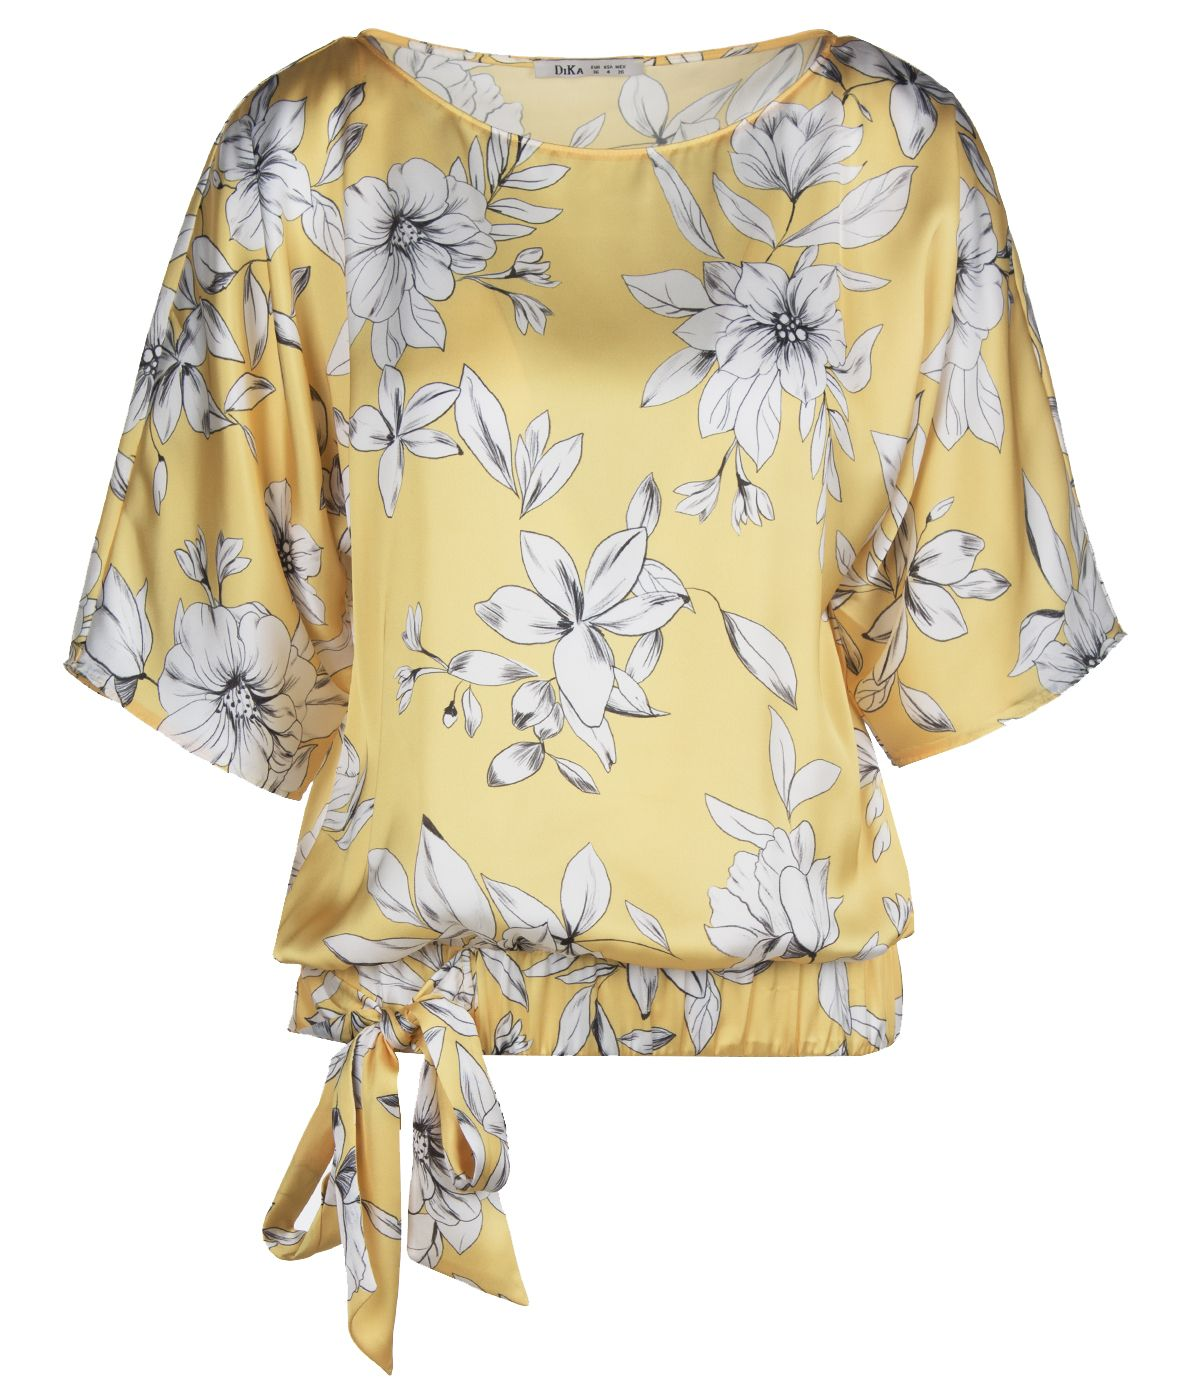 Short-sleeved blouse with tie-hem finish and flowers print 0